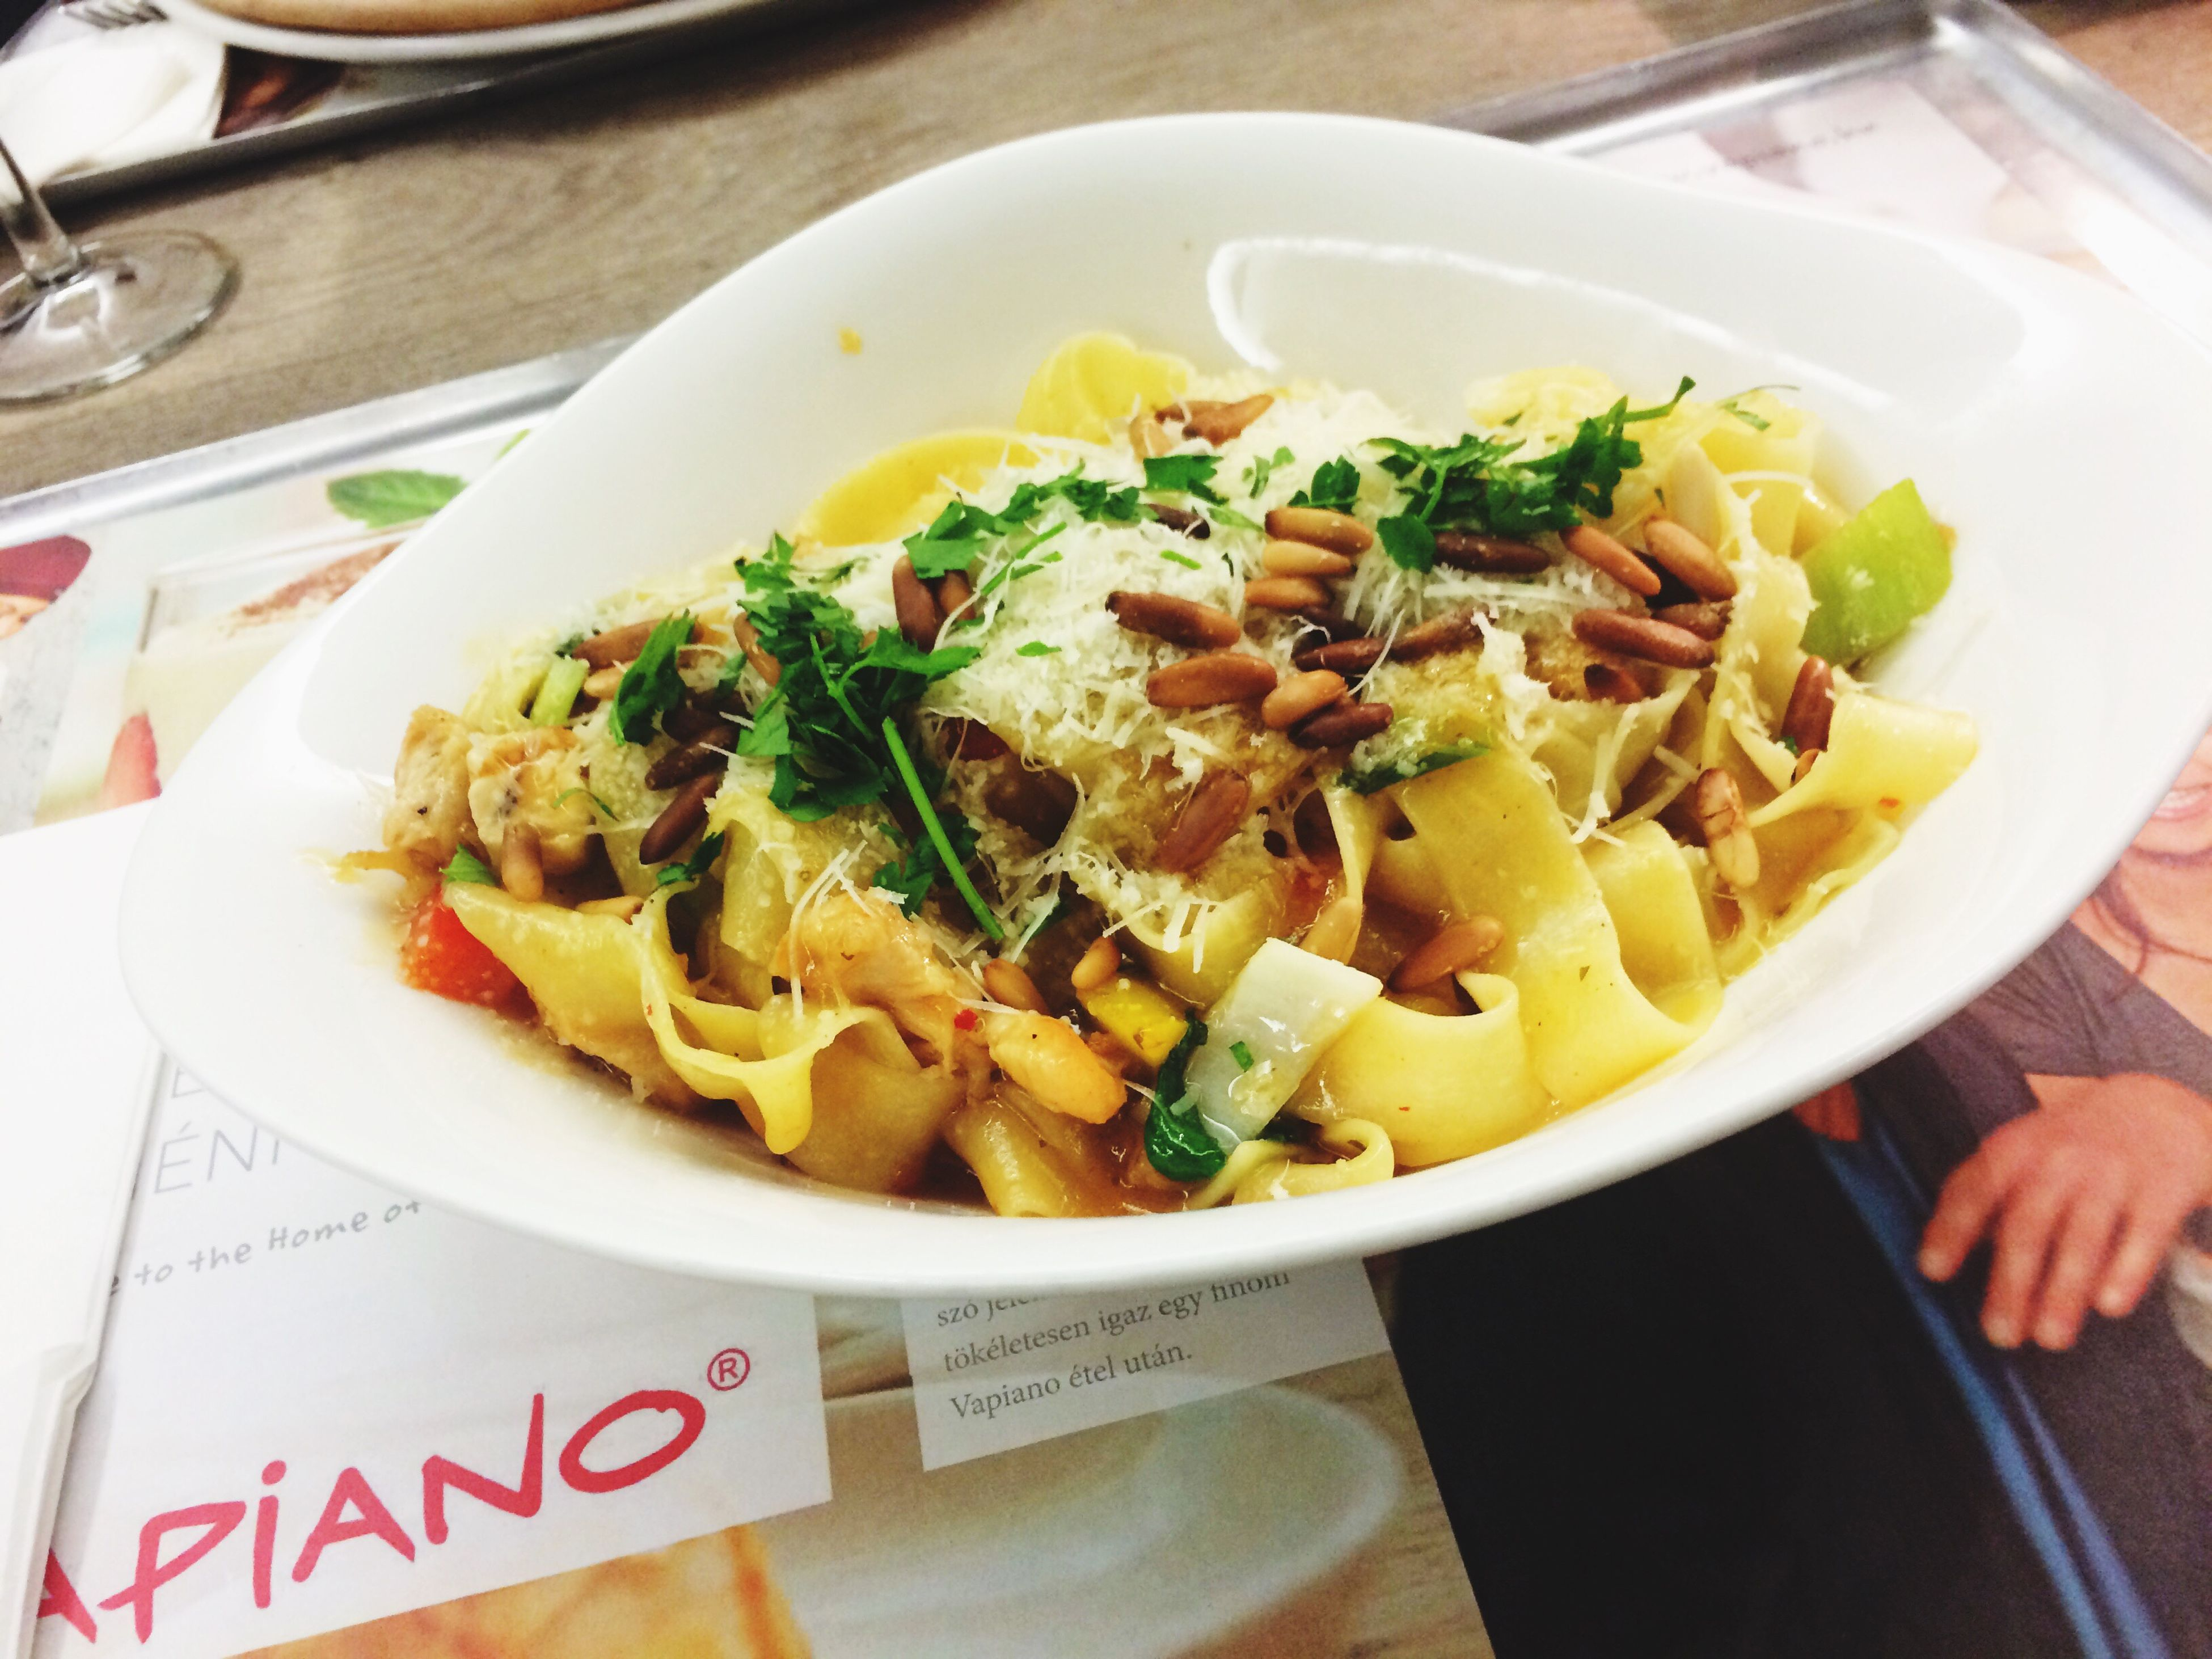 plate, pasta, food and drink, food, high angle view, freshness, indoors, close-up, ready-to-eat, italian food, table, no people, day